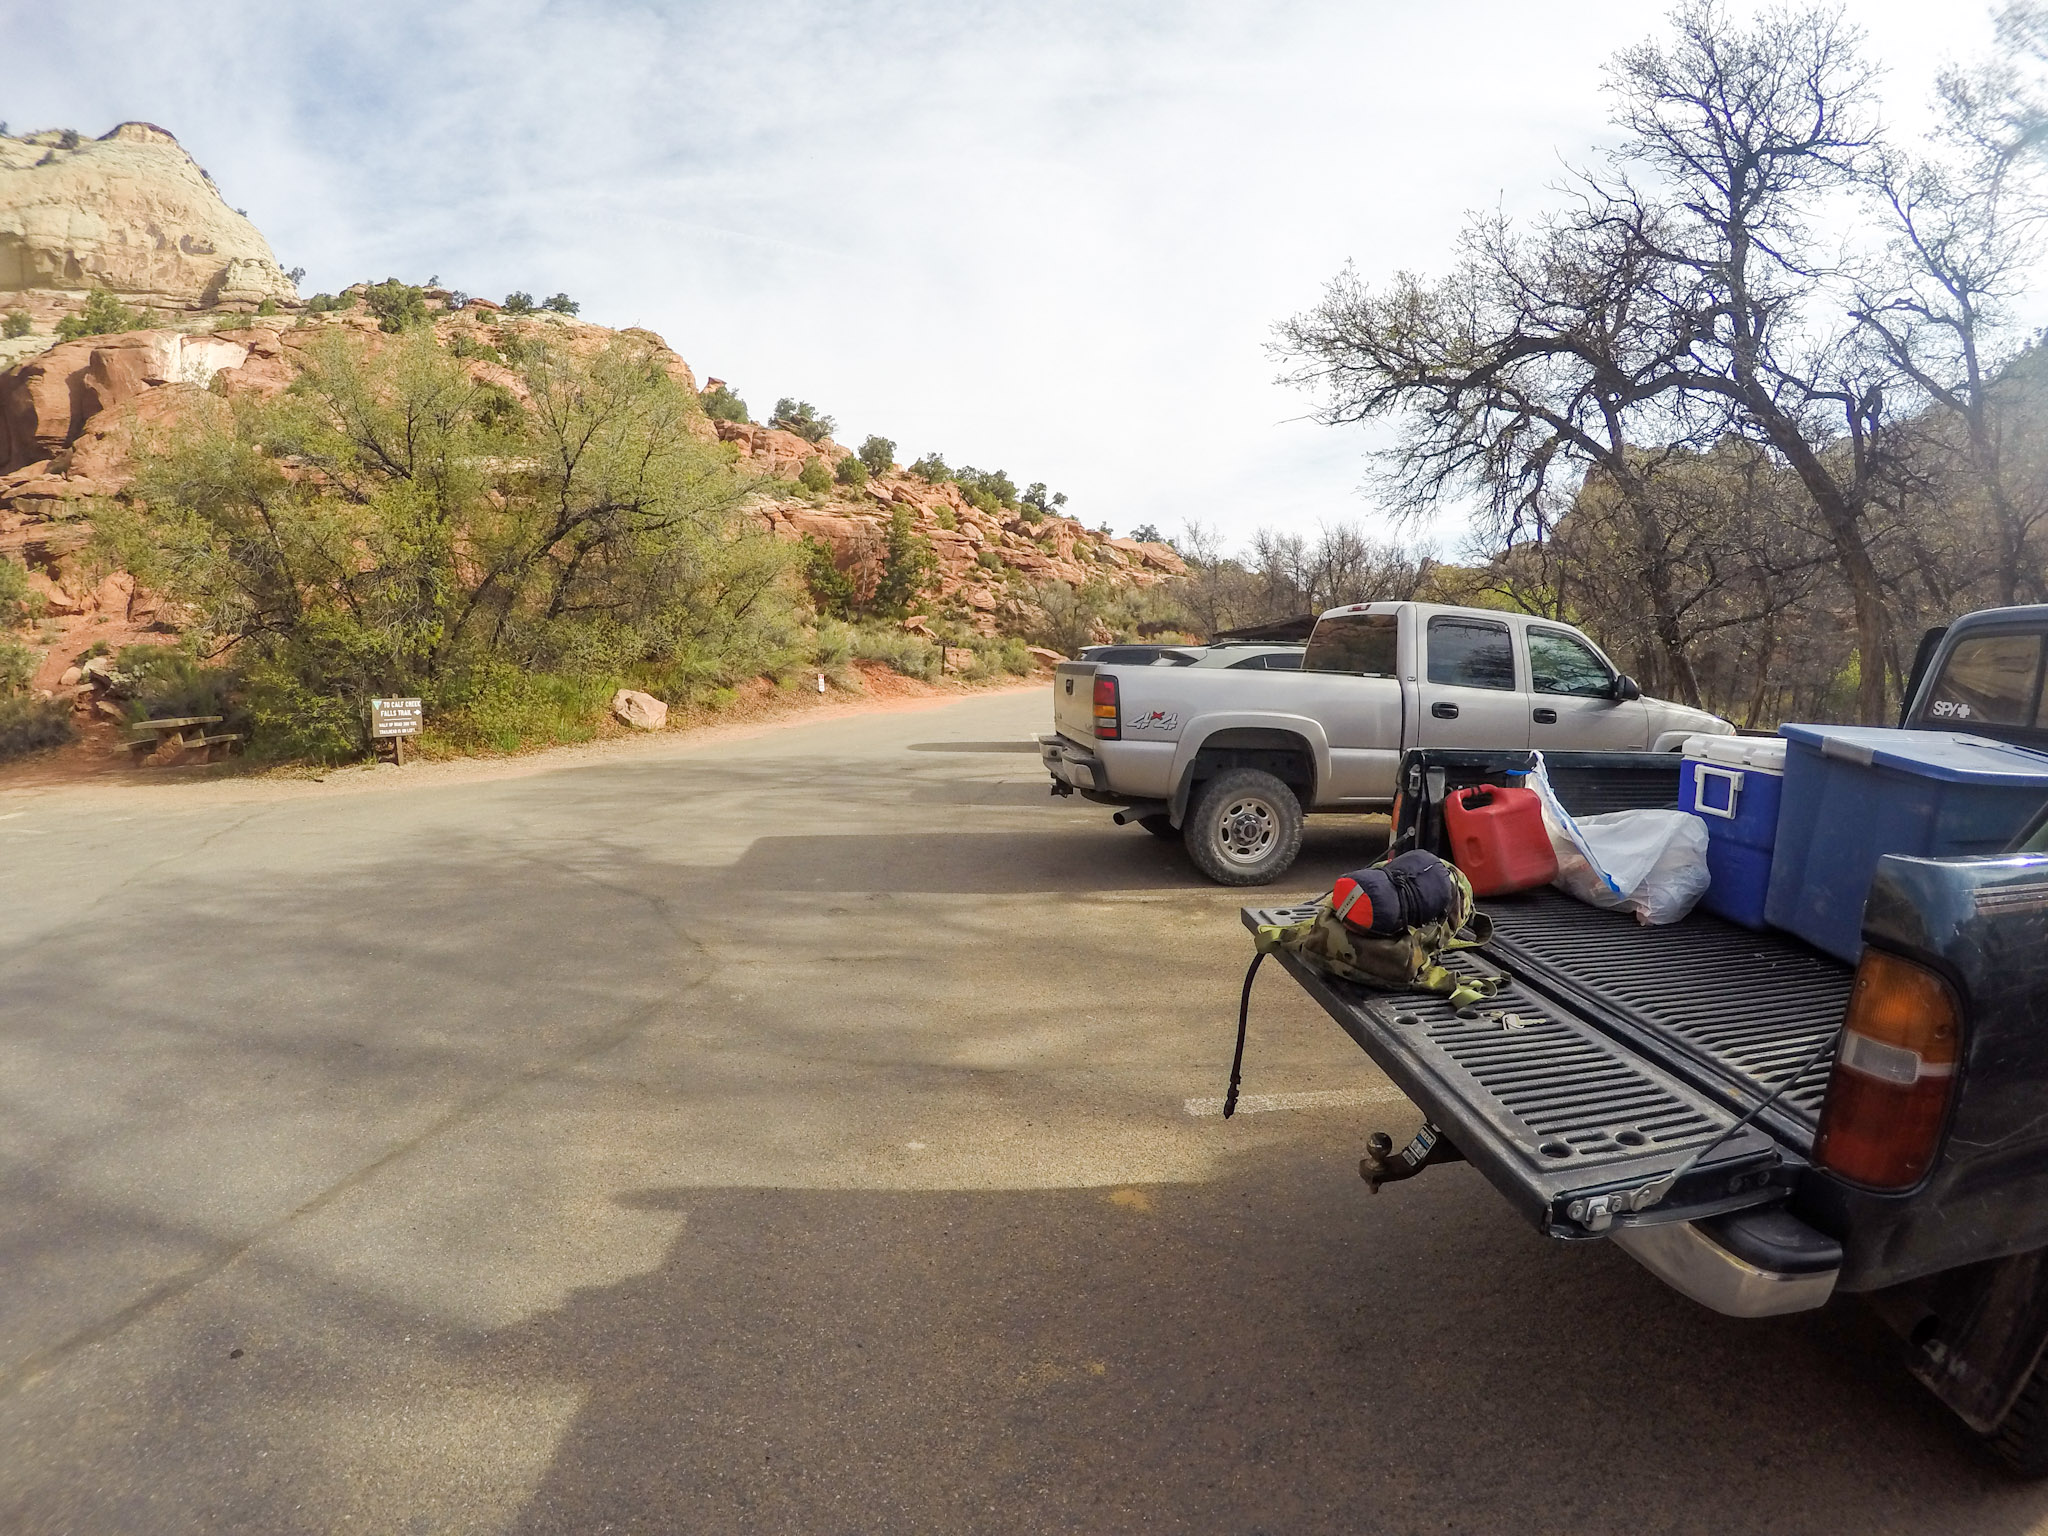 The parking lot by the trailhead and campground (on the right)